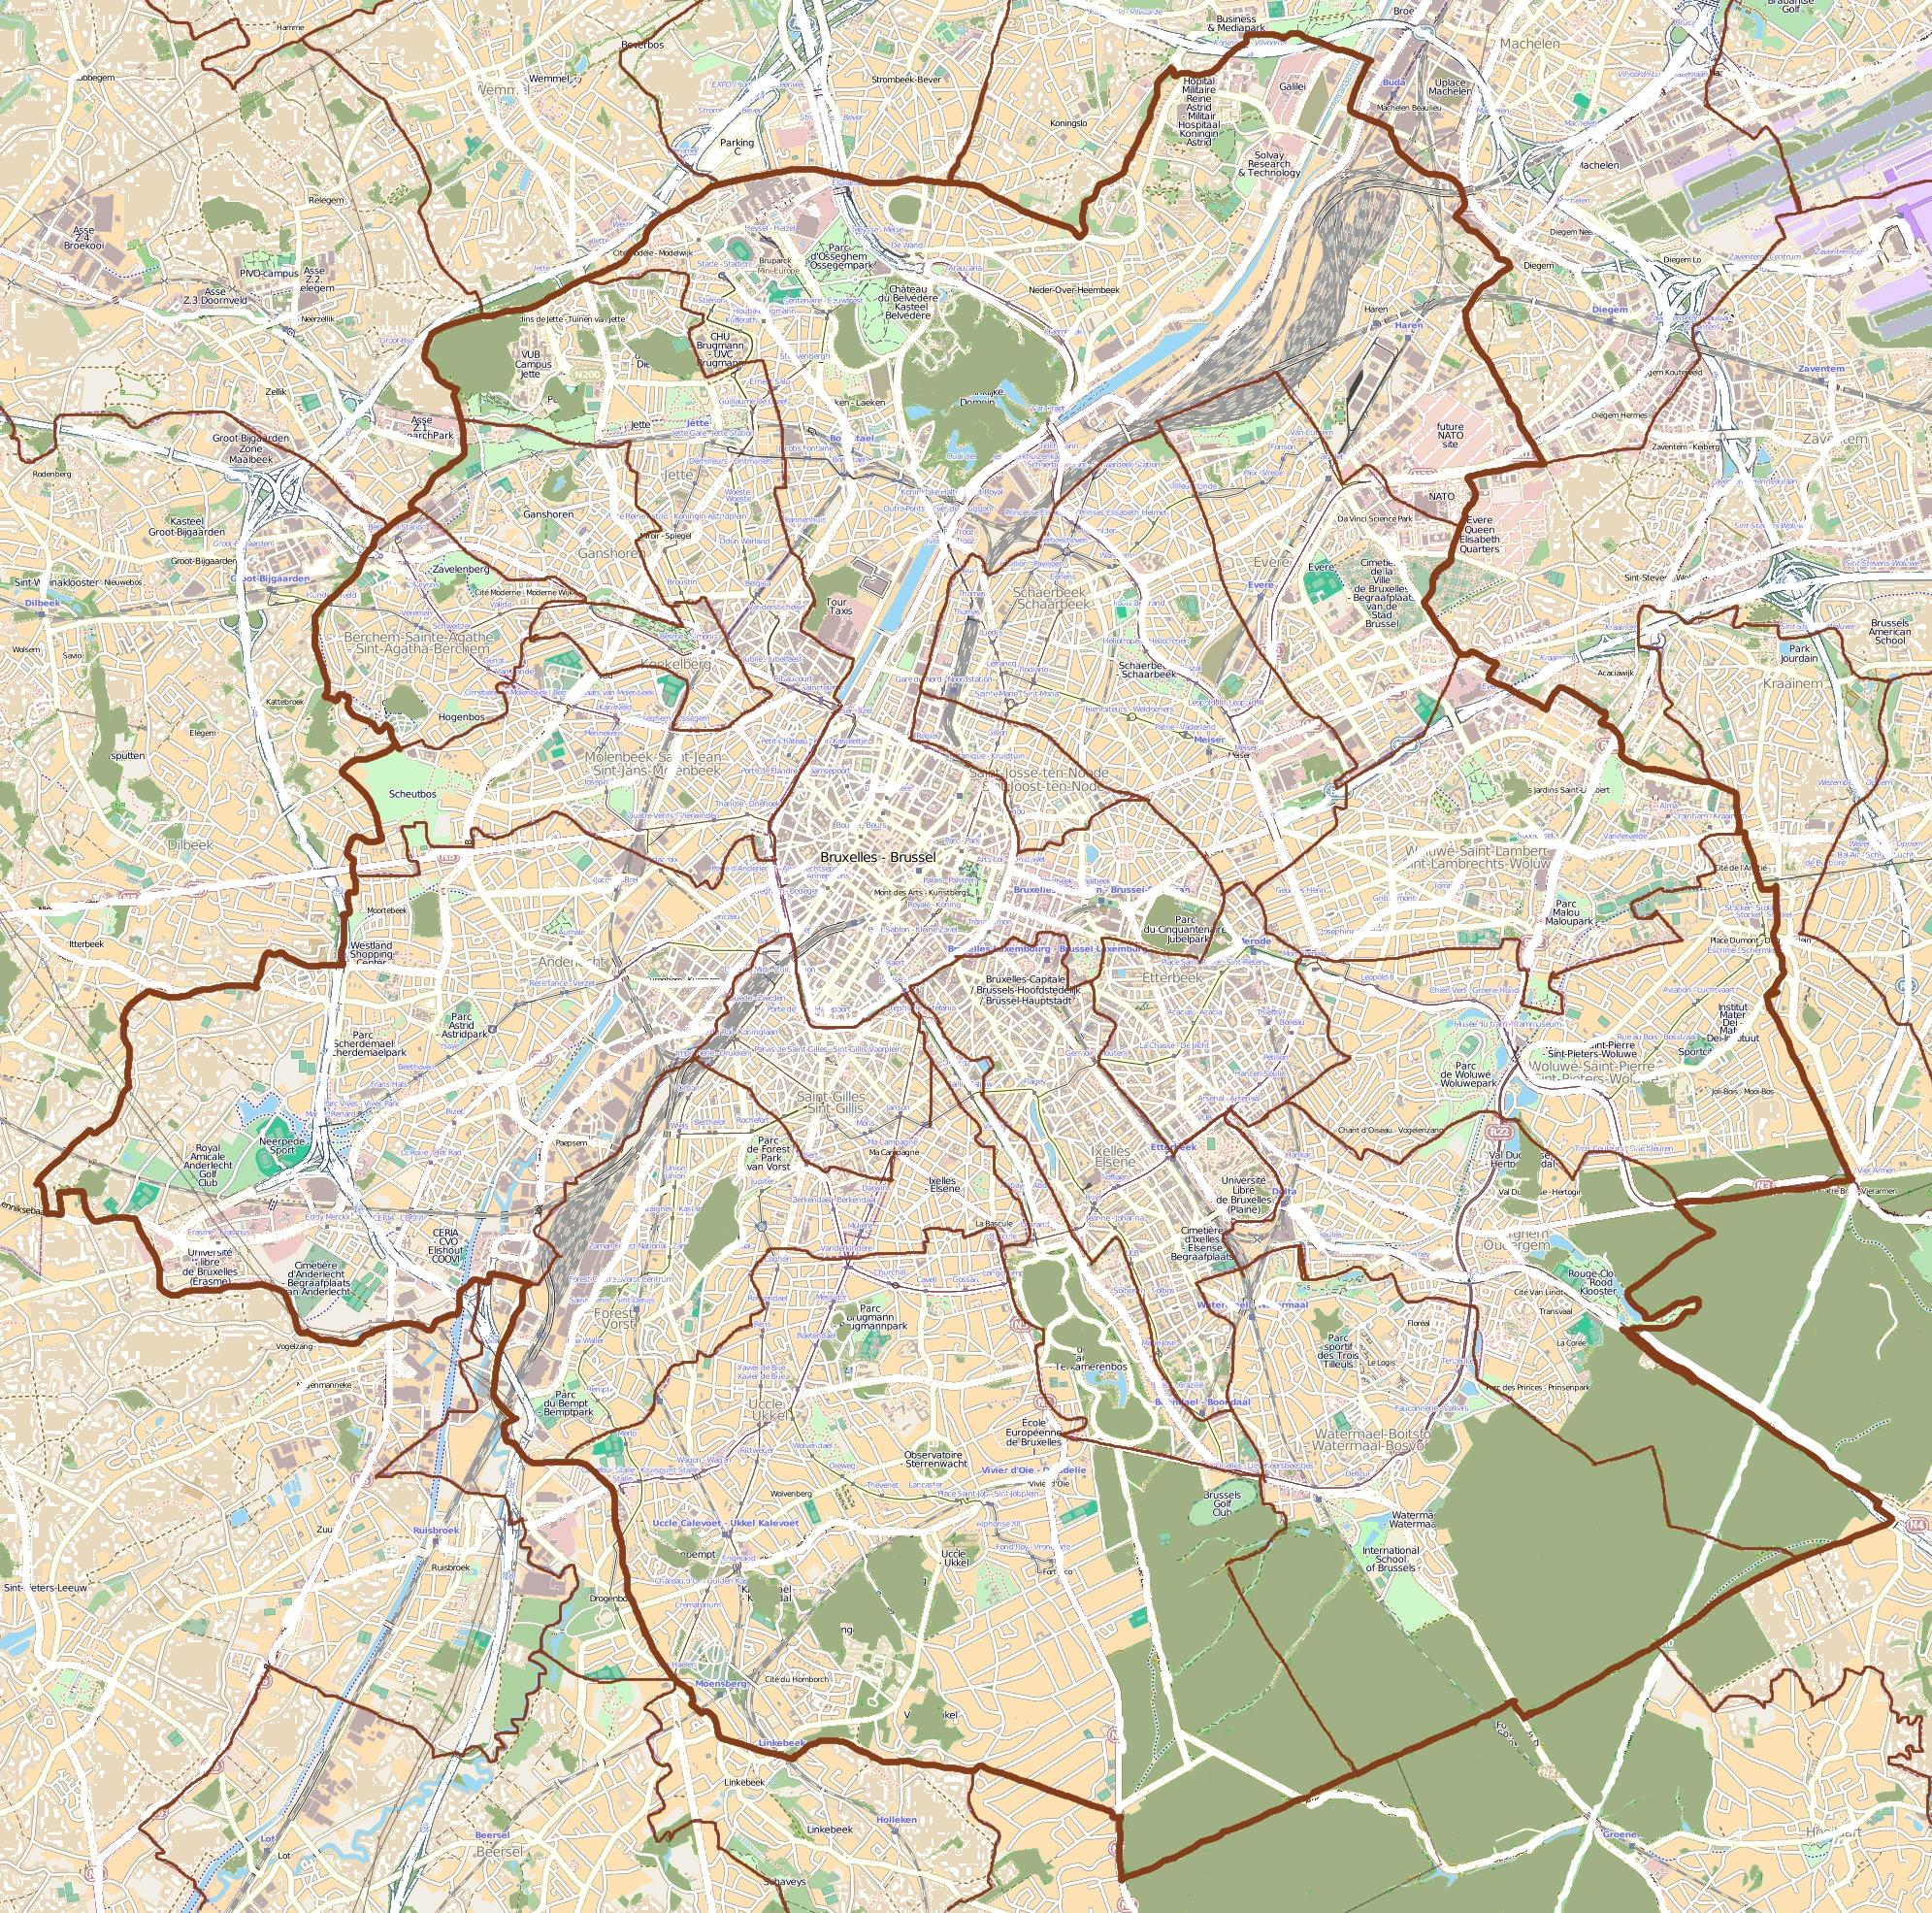 FileMap BruxellesCapitalejpg Wikimedia Commons